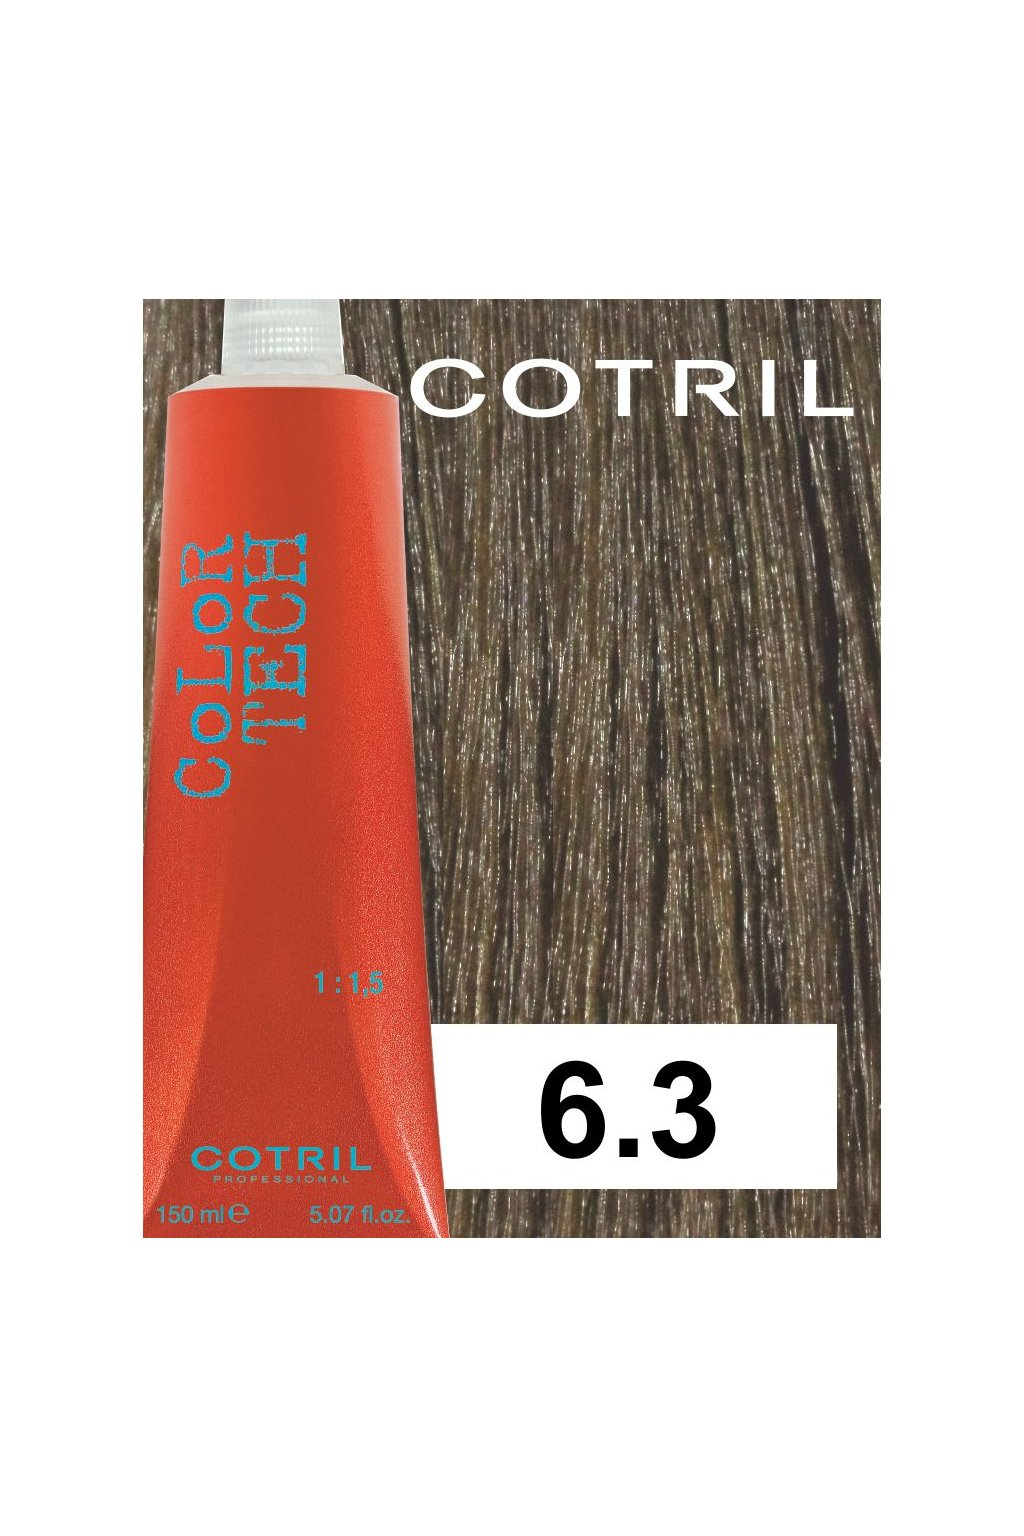 6 3 ct cotril